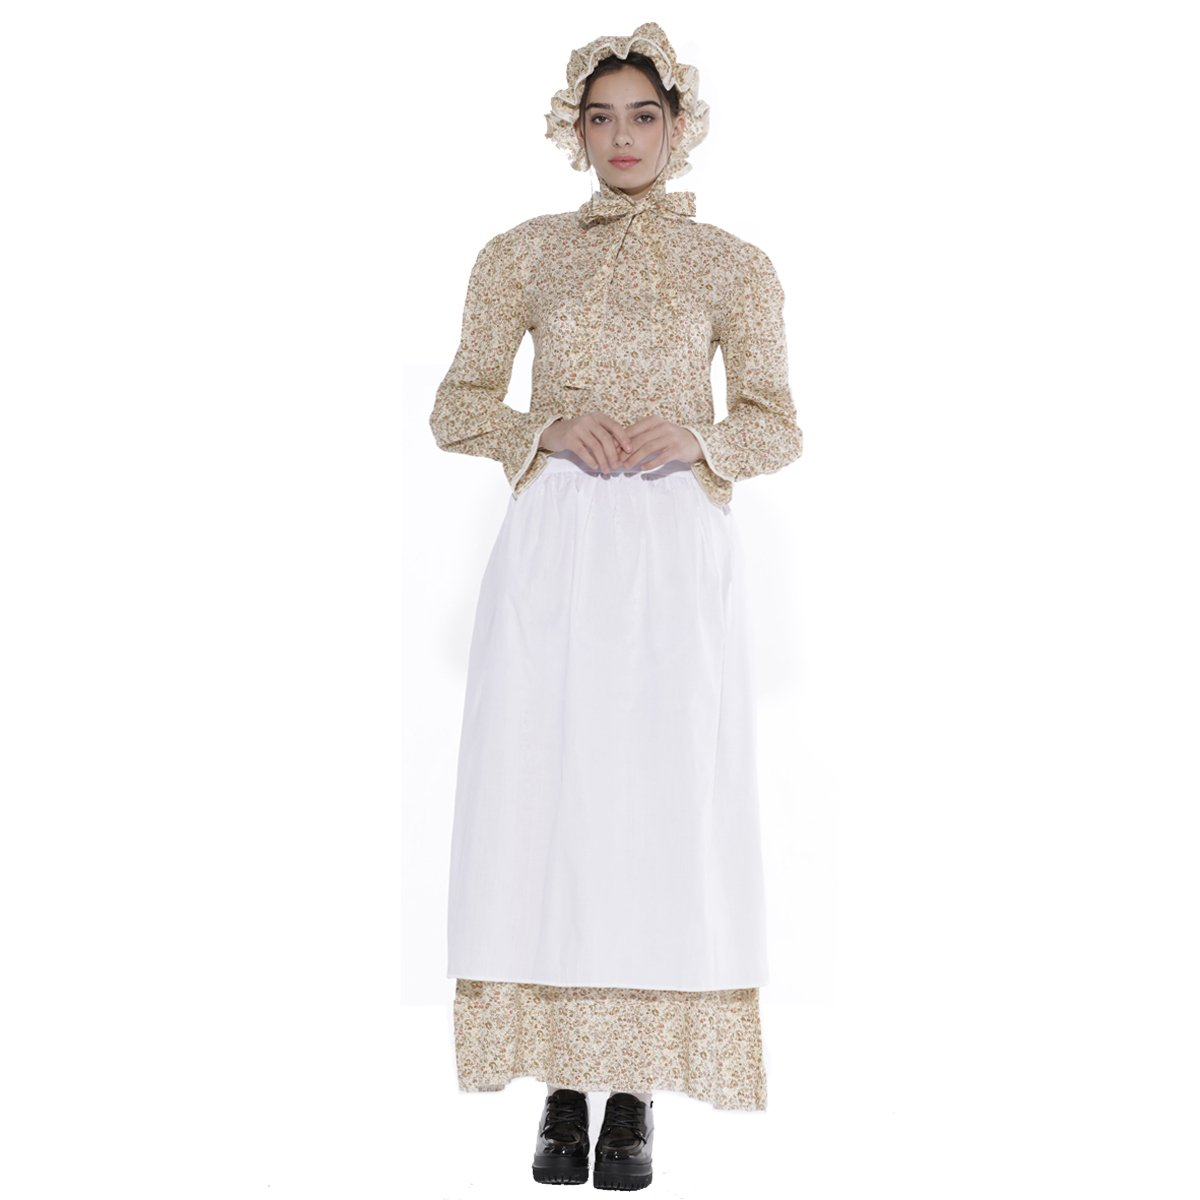 Vintage Style Children's Clothing: Girls, Boys, Baby, Toddler  Prairie Colonial Dress Reenactment Pioneer Women Costume KOGOGO $43.99 AT vintagedancer.com